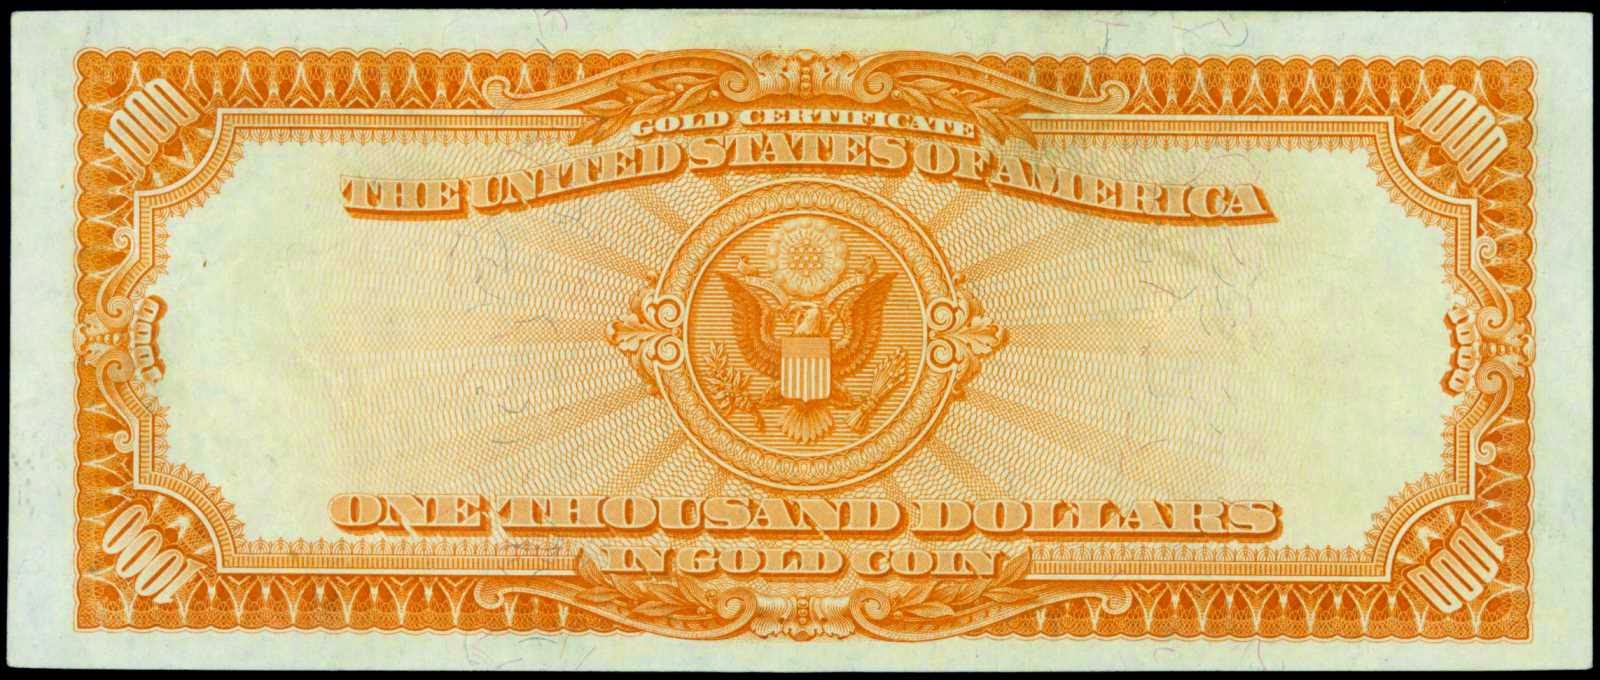 United States cueewncy 1000 Dollars Gold Certificate